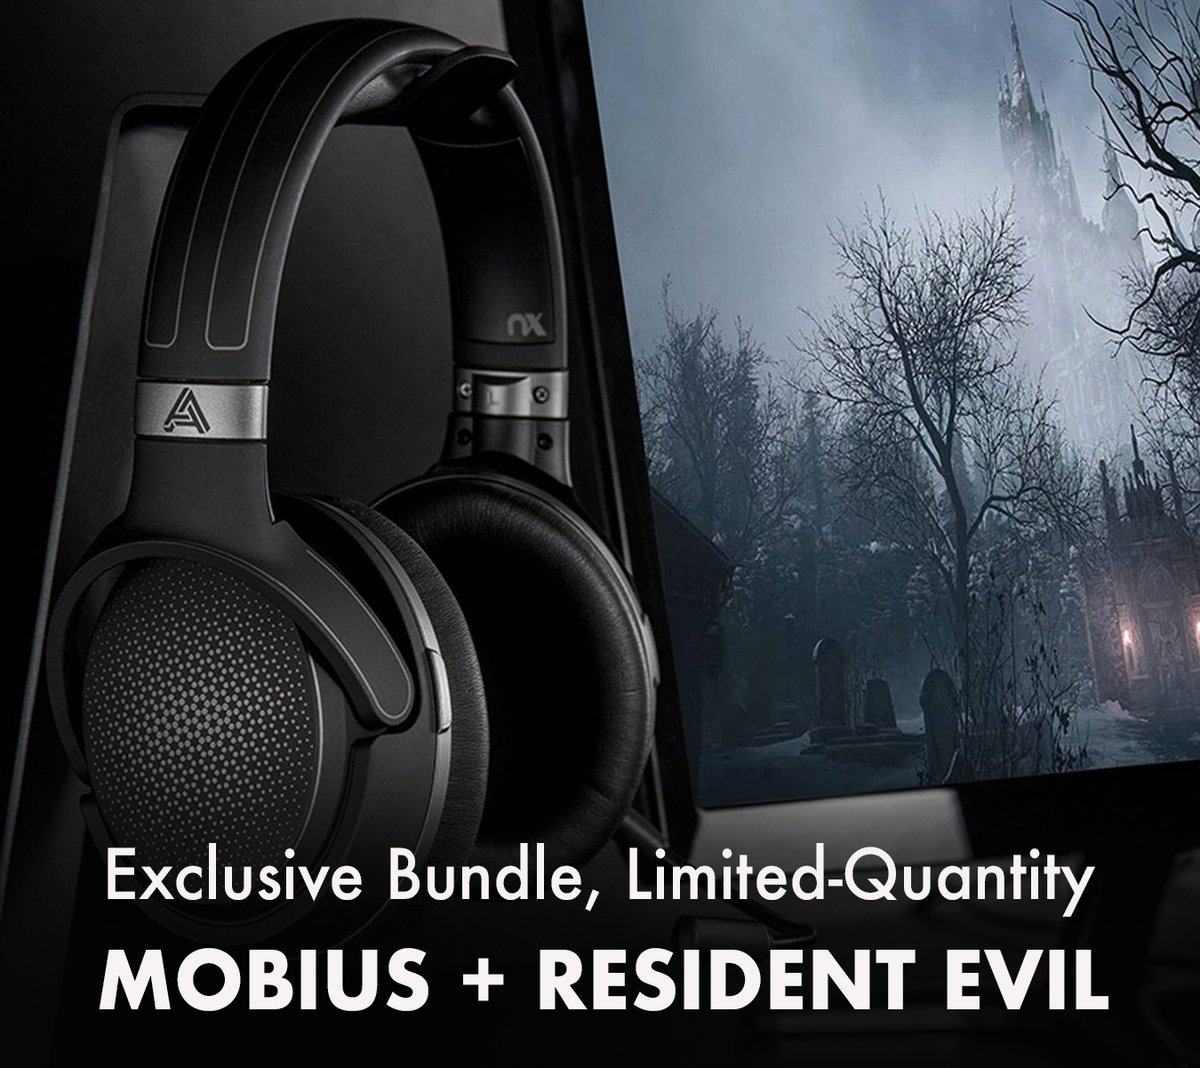 Beginning June 15 at 9am PST, each Mobius purchased on https://t.co/sw8H182LFM will include a free STEAM download of Resident Evil Village, the most anticipated horror game of 2021. Available to North America residents only while supplies last. Learn more: https://t.co/iIcRFwzpRo https://t.co/M39BjfSeJw